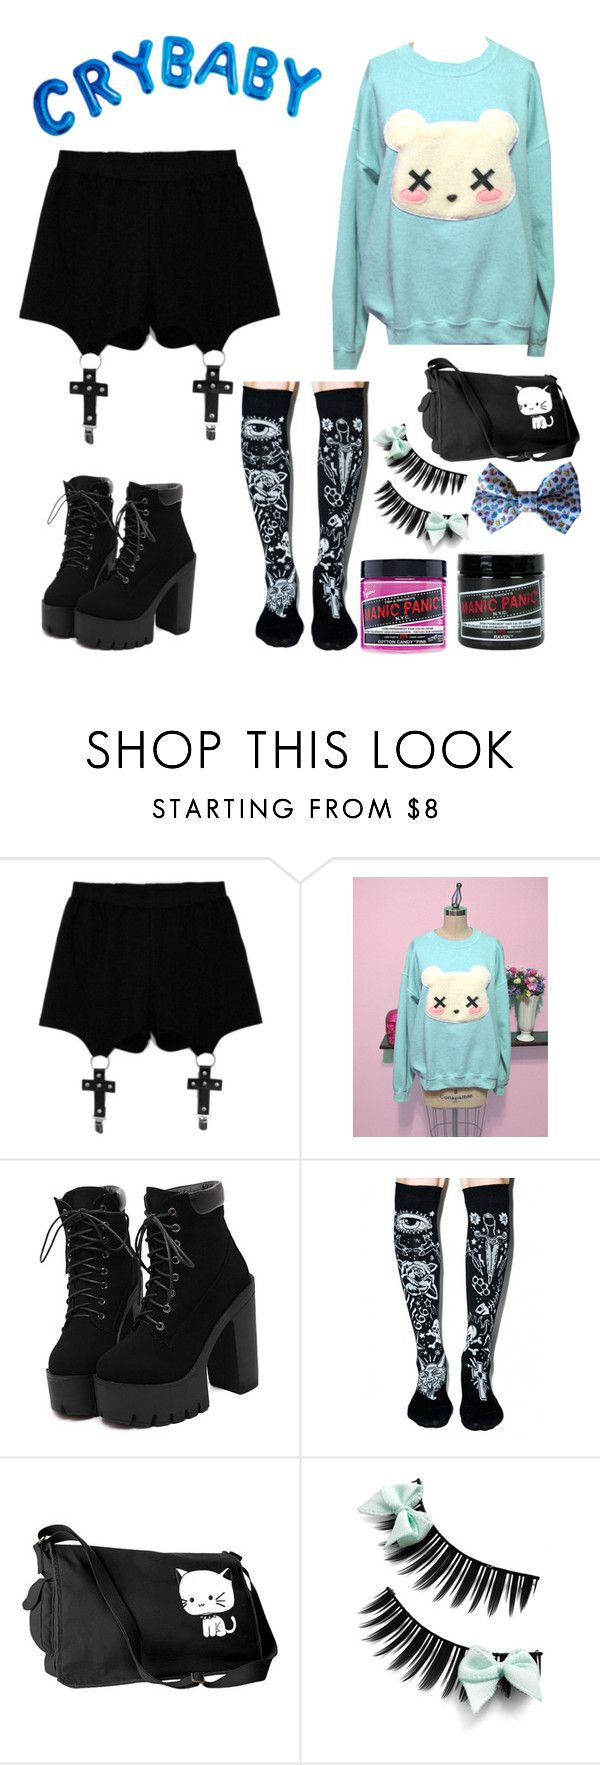 """""""Pastel Melanie Martinez inspired"""" by danandphillove ❤ liked on Polyvore featuring Chicnova Fashion, Too Fast, Manic Panic, women's clothing, women's fashion, women, female, woman, misses and juniors"""